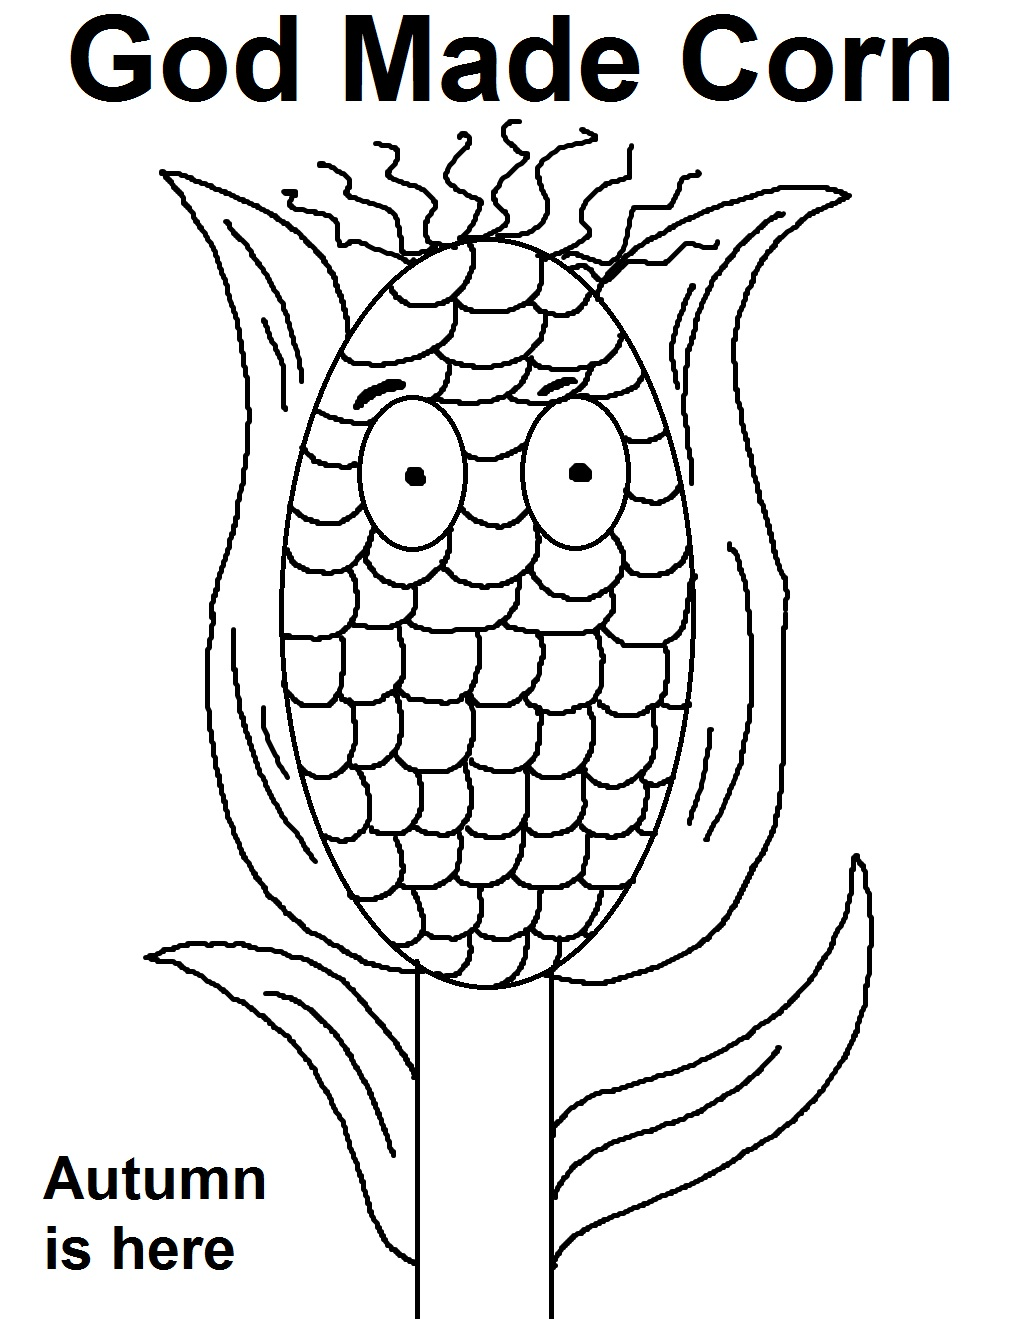 1019x1319 Poppy Corn Shopkin Coloring Page Printable Pages Click The To View